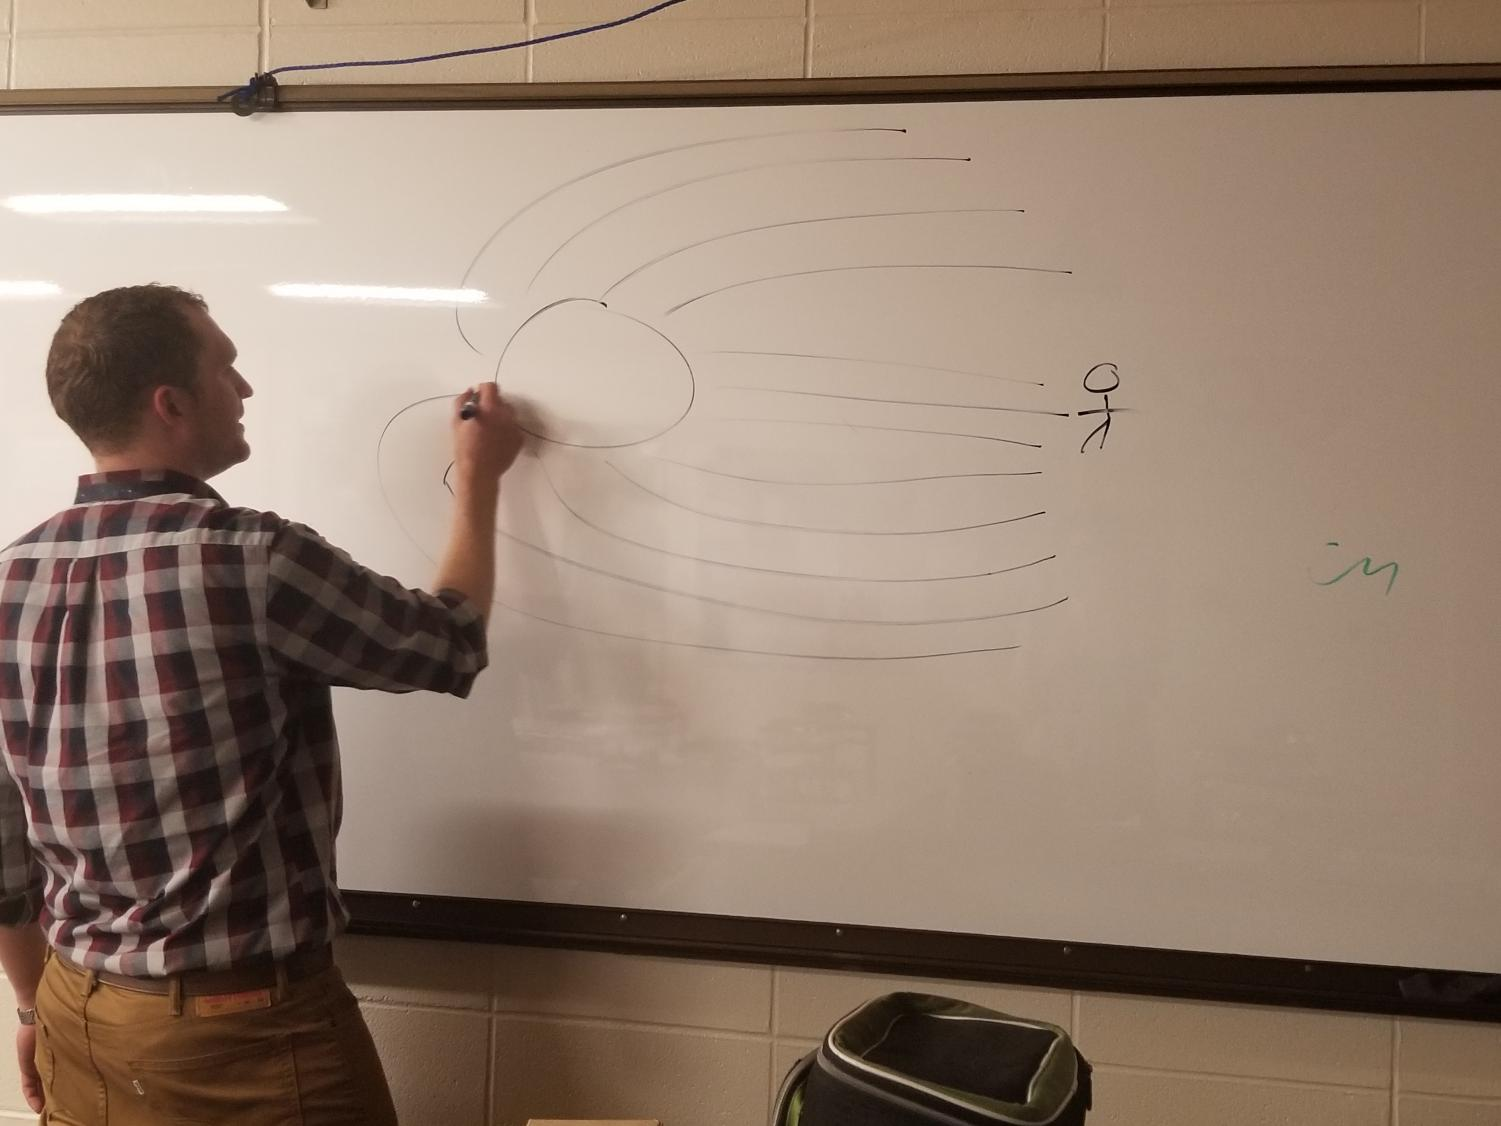 Ian Spangenberg draws a diagram demonstrating how light bends when close to a black hole.